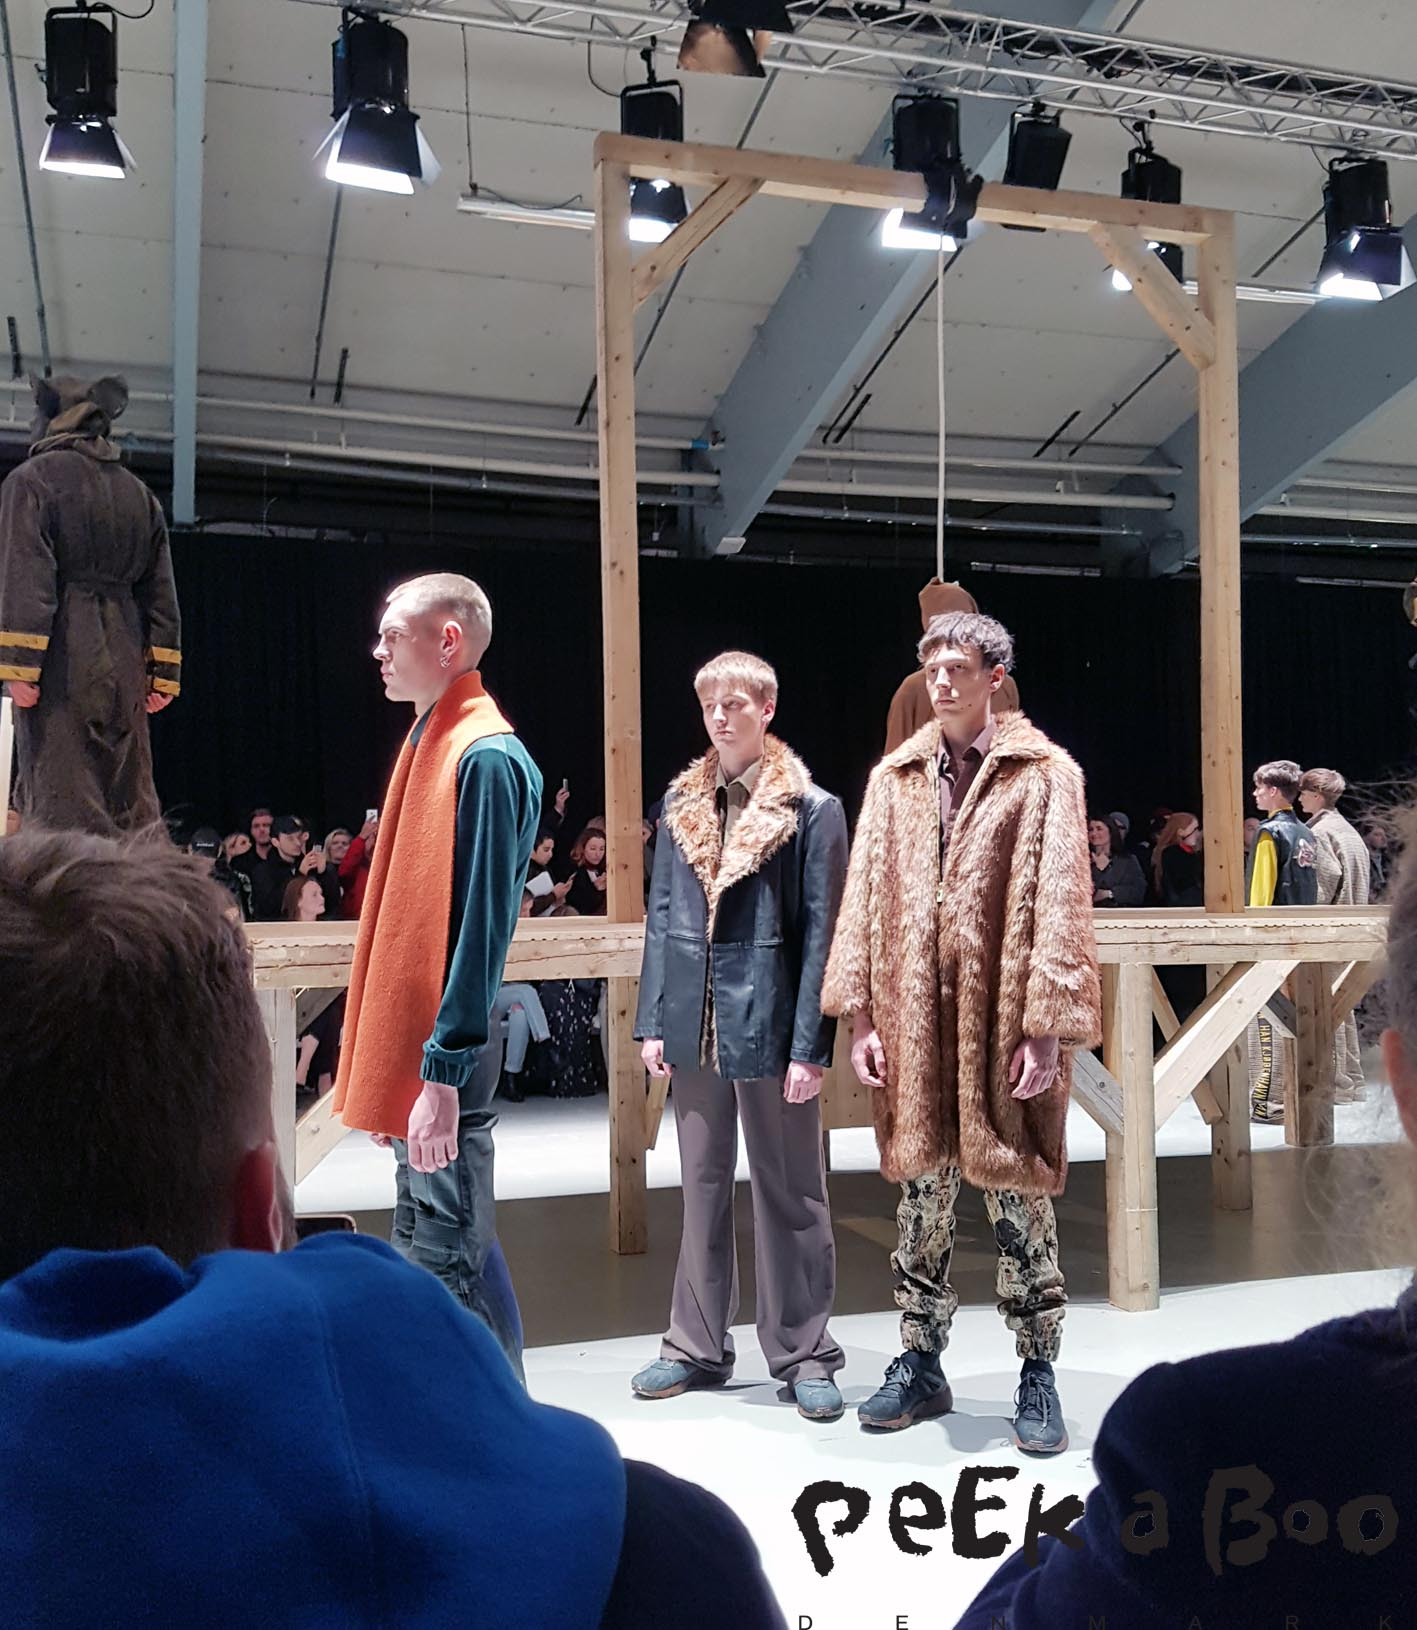 Three models after the show. Cool fur coat, and fur trim on one of the jackets, and a really cool colourpalette.